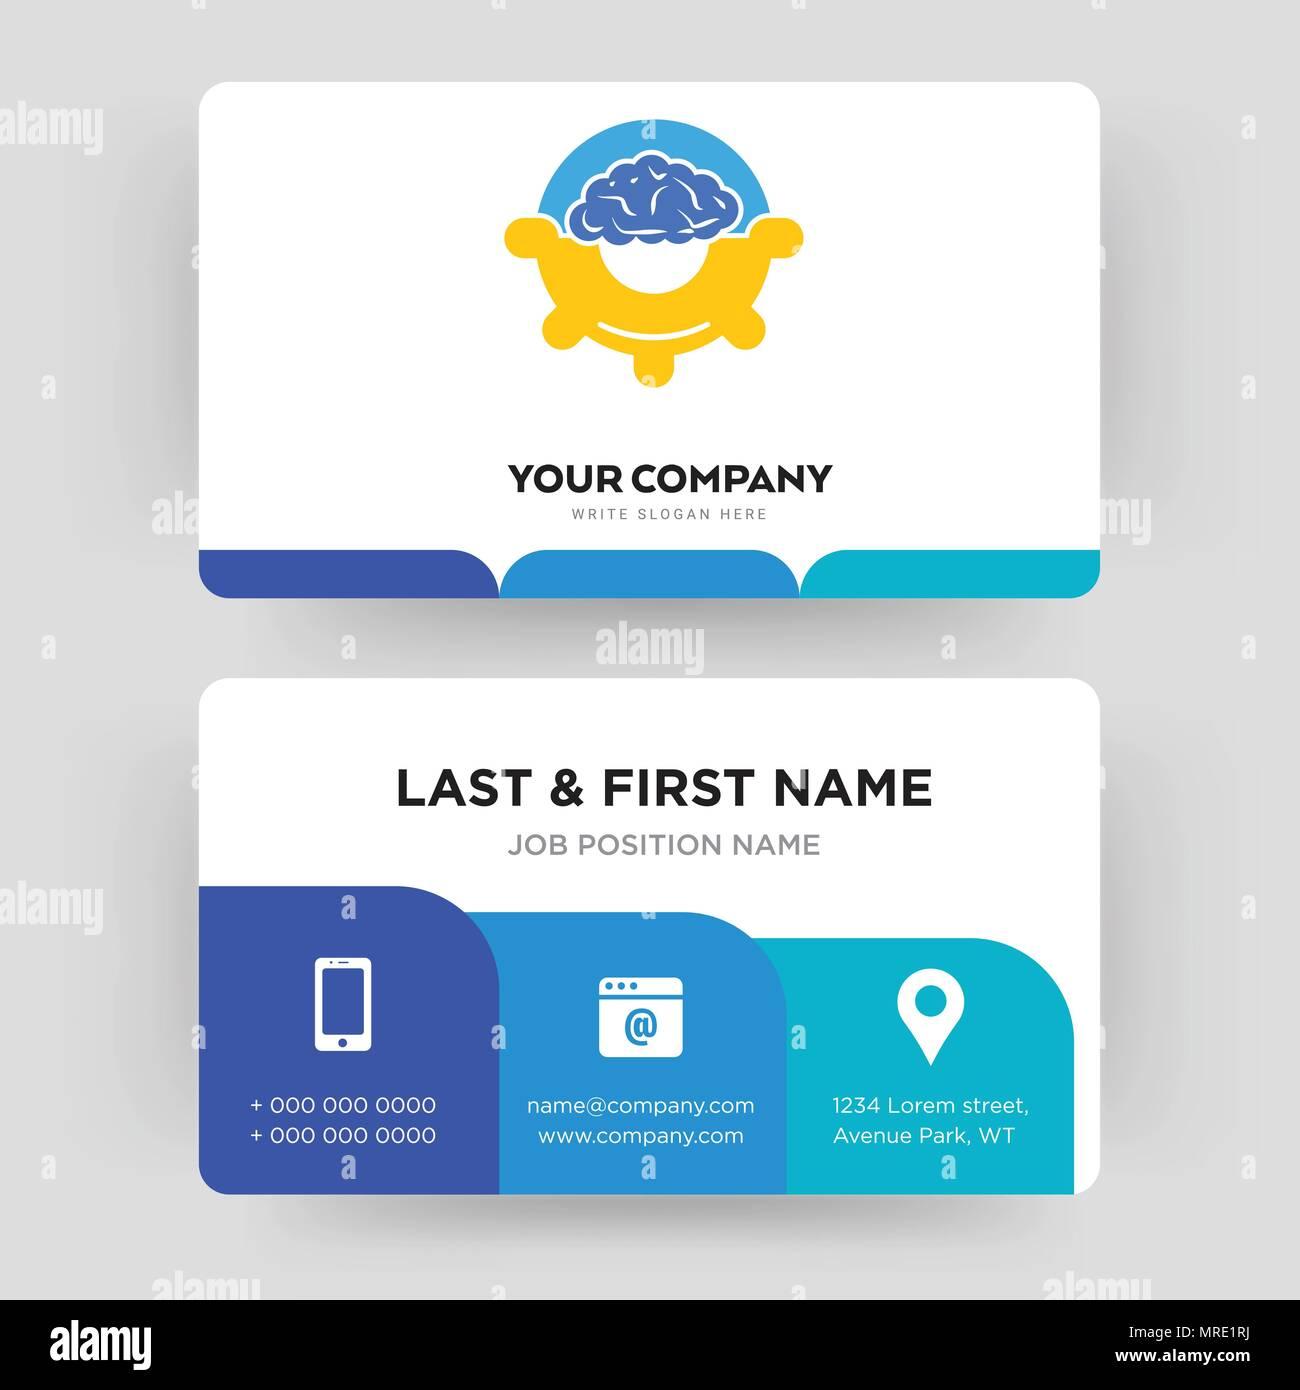 program management, business card design template, Visiting for your ...